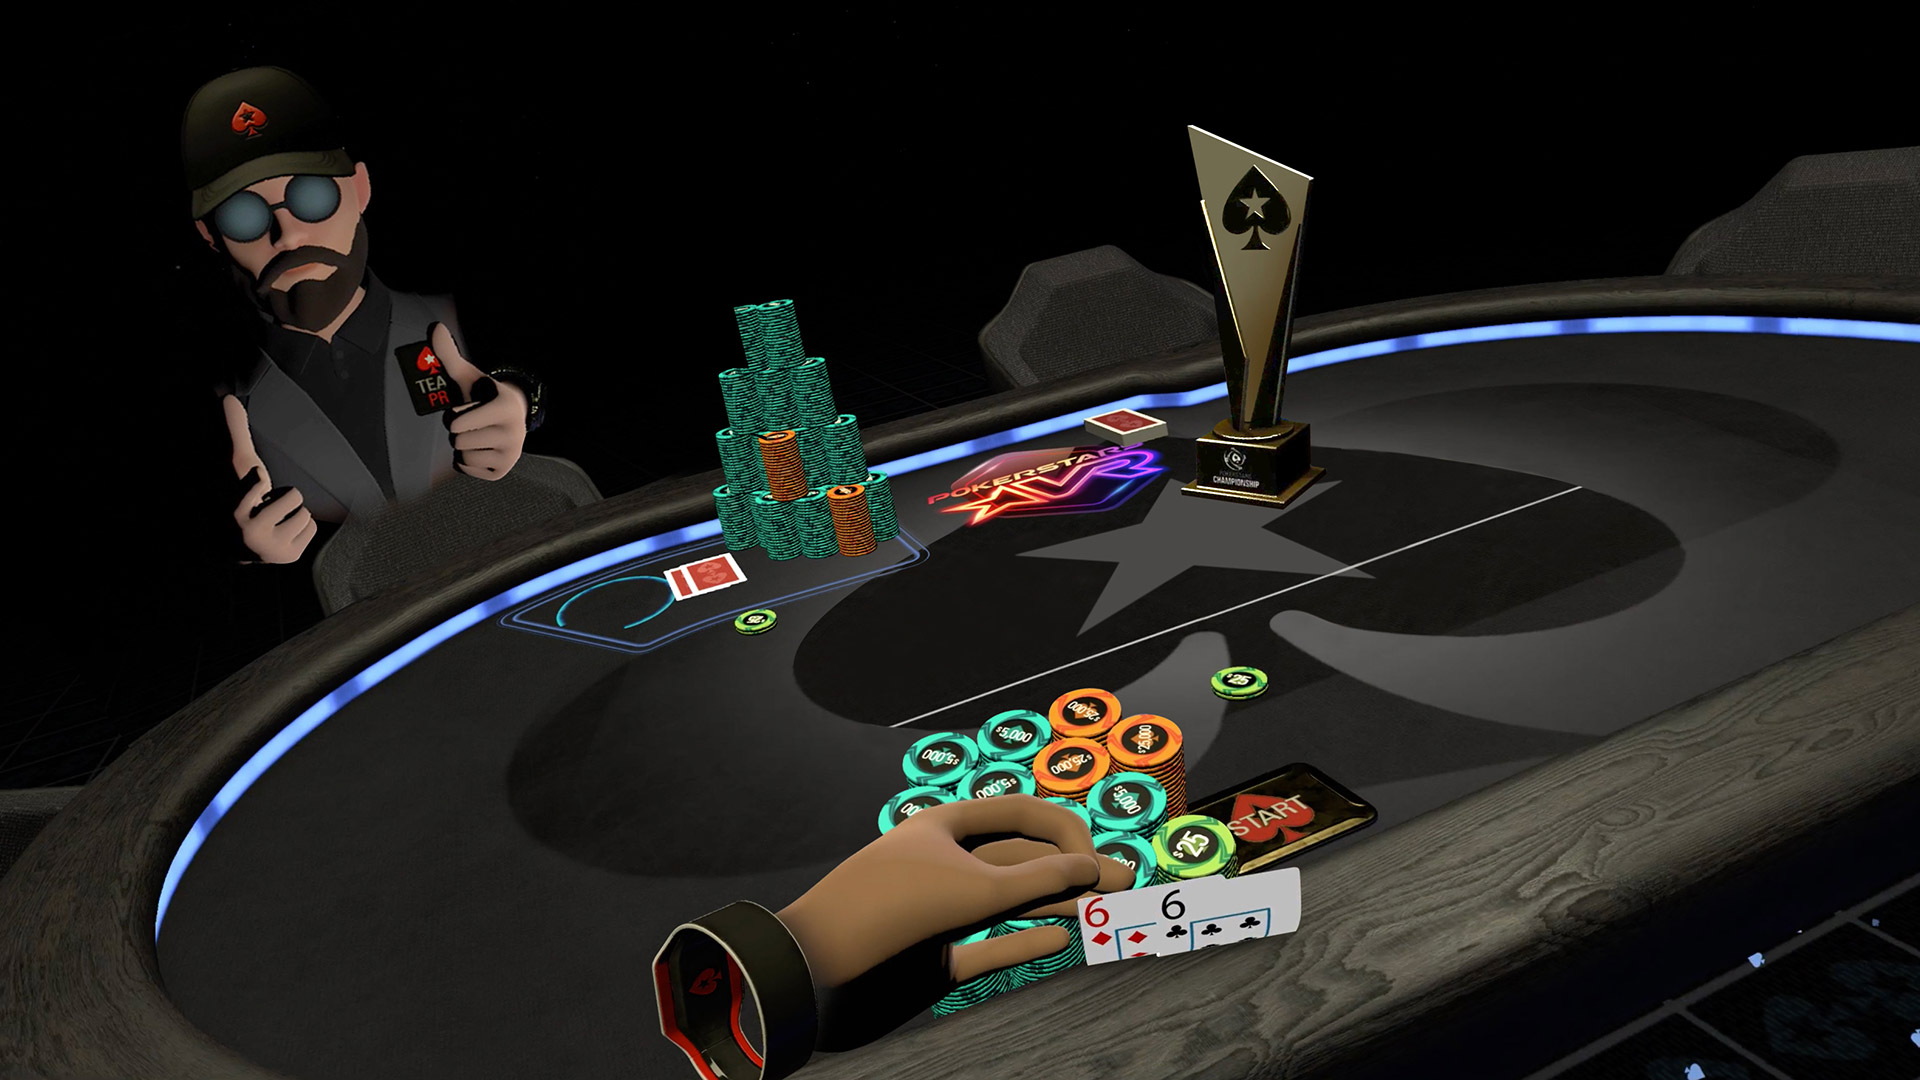 pokerstars vr wallpaper 73551